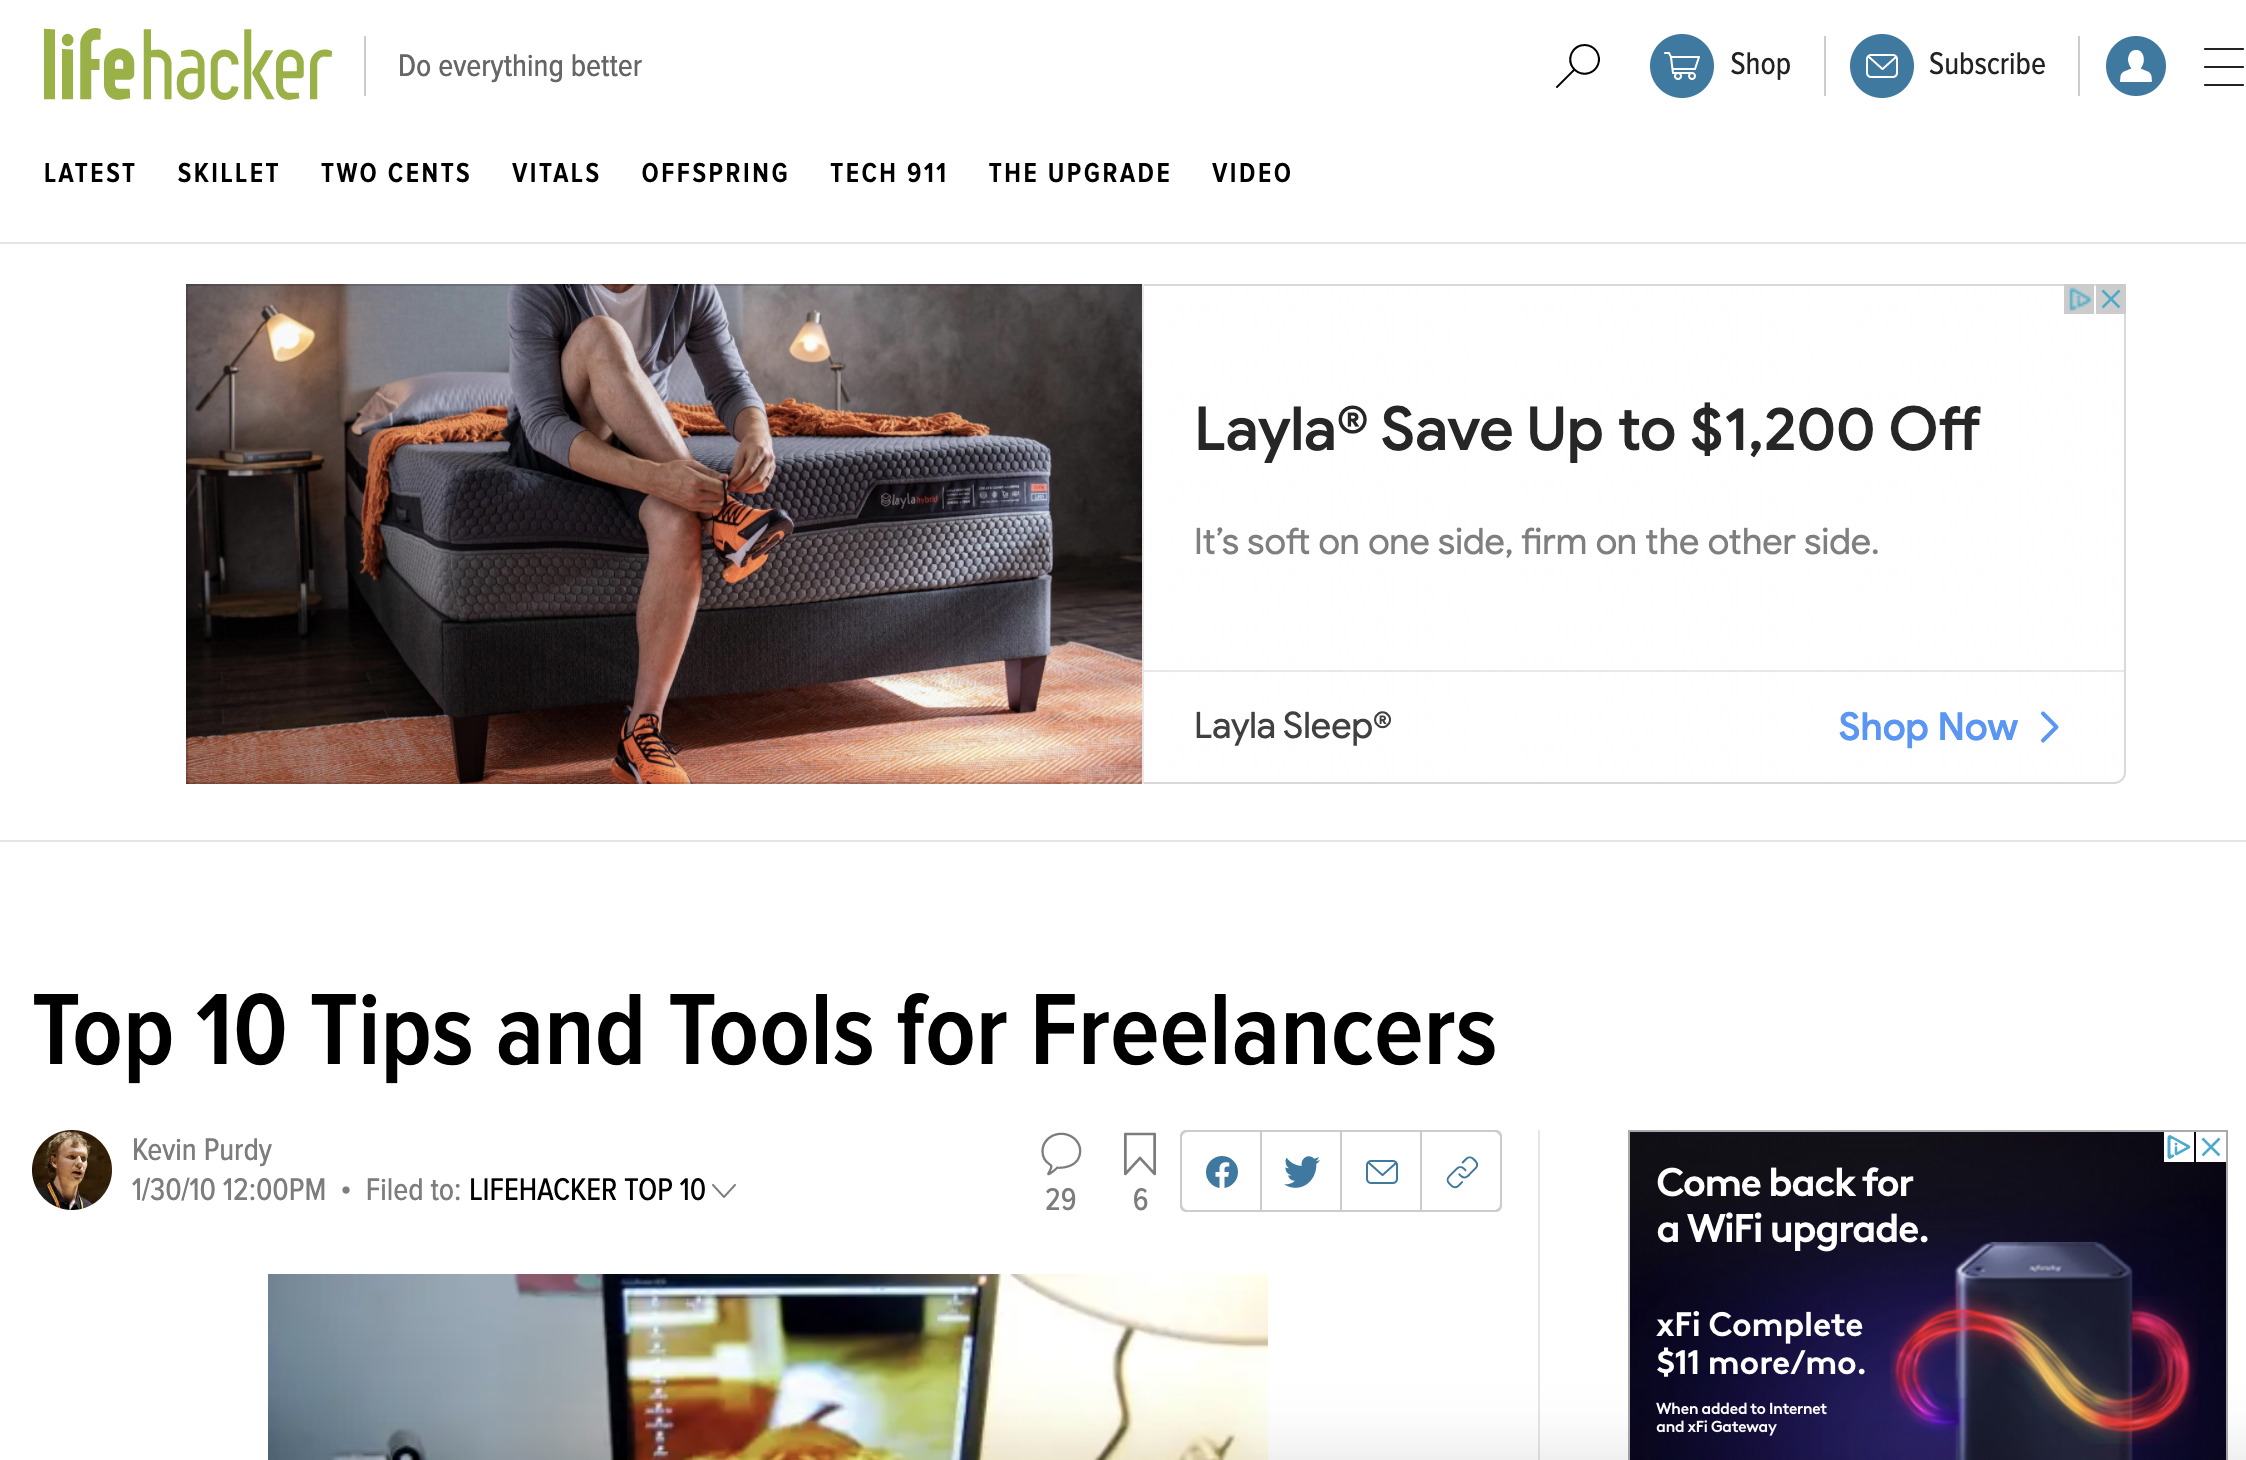 Lifehacker - Tips and Tools for Freelancers